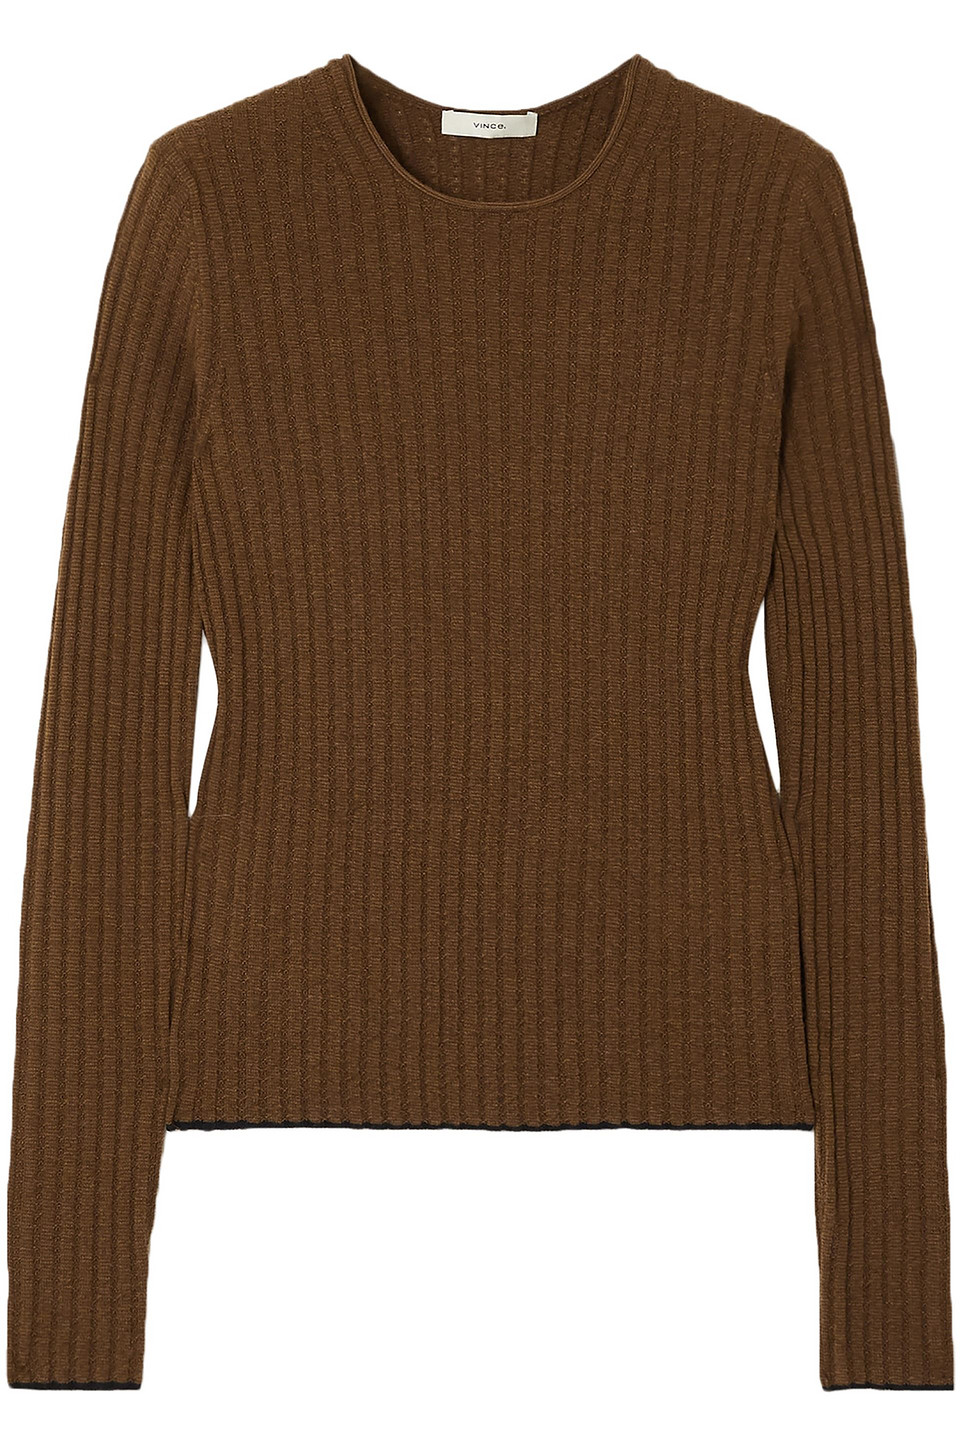 Vince | Vince. Woman Ribbed Cashmere Sweater Army Green | Clouty